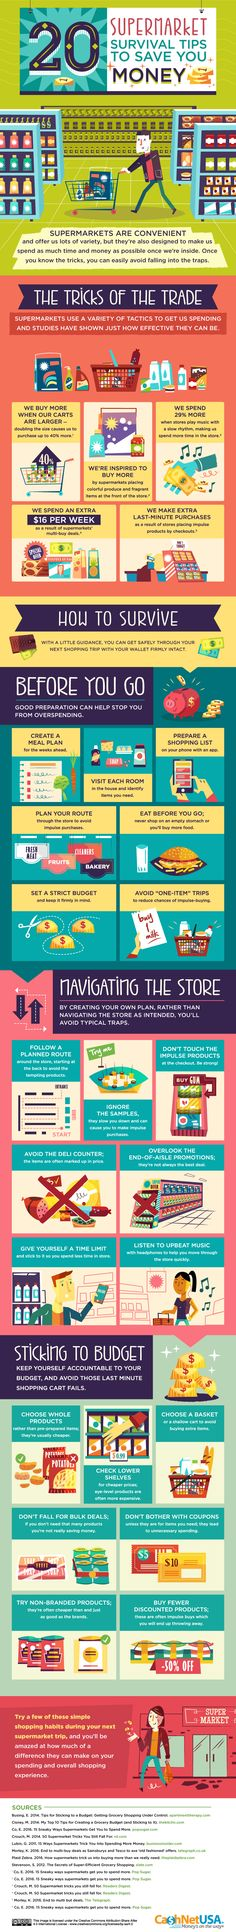 20 #SUPERMARKET SURVIVAL #TIPS TO SAVE YOU #MONEY - Do you fancy an infographic? There are a lot of them online, but if you want your own please visit http://linfografico.com/en/prices/ Online girano molte infografiche, se ne vuoi realizzare una tutta tua visita http://www.linfografico.com/prezzi/